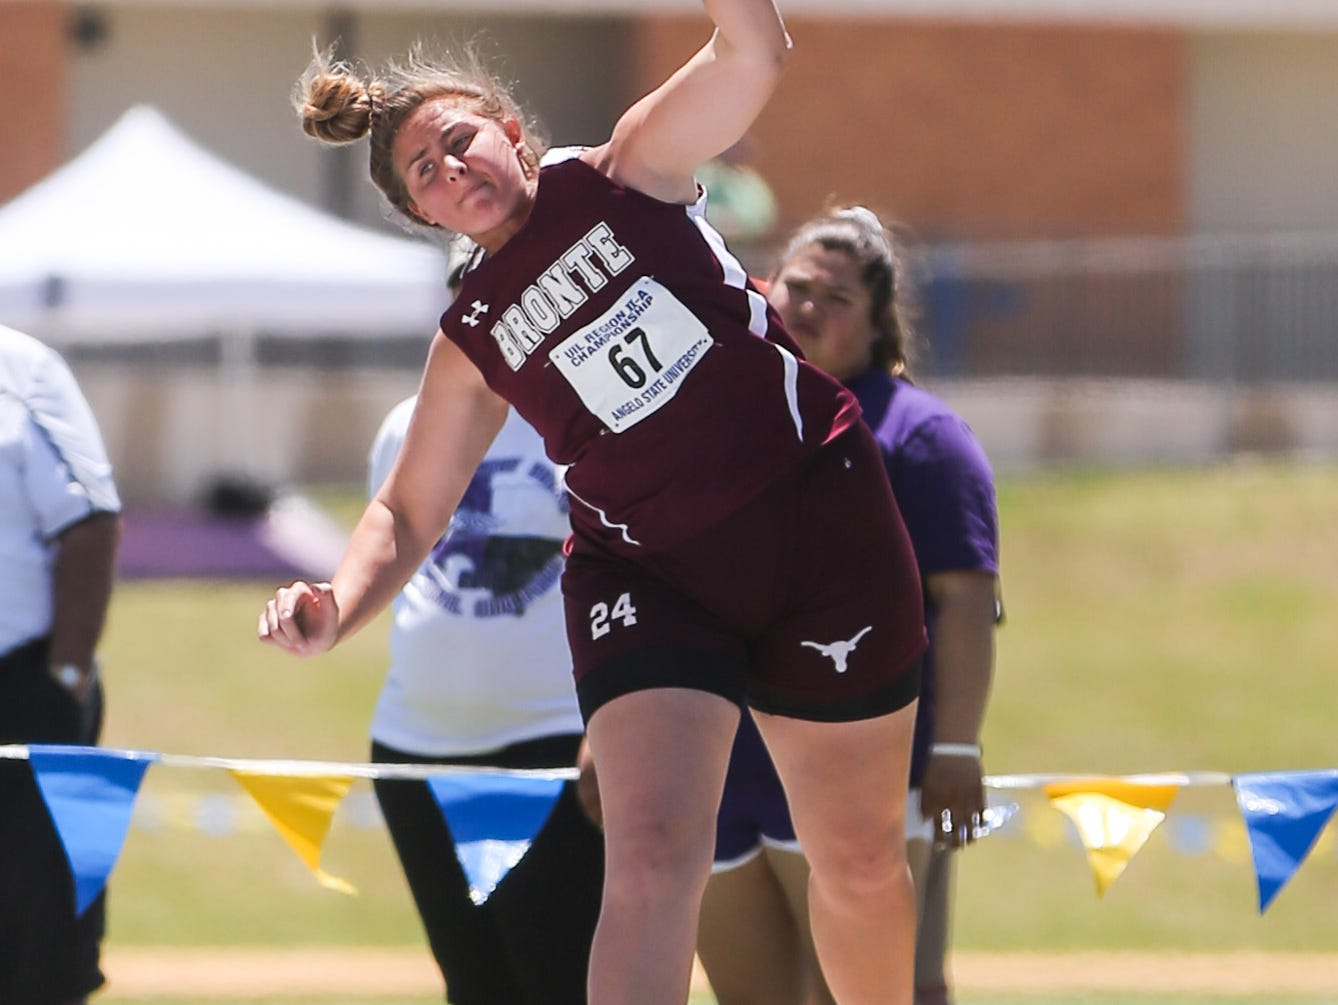 Bronte's Kristen Stilley throws a shot put during the Region II-1A championships Friday, April 26, 2019, at Angelo State University.